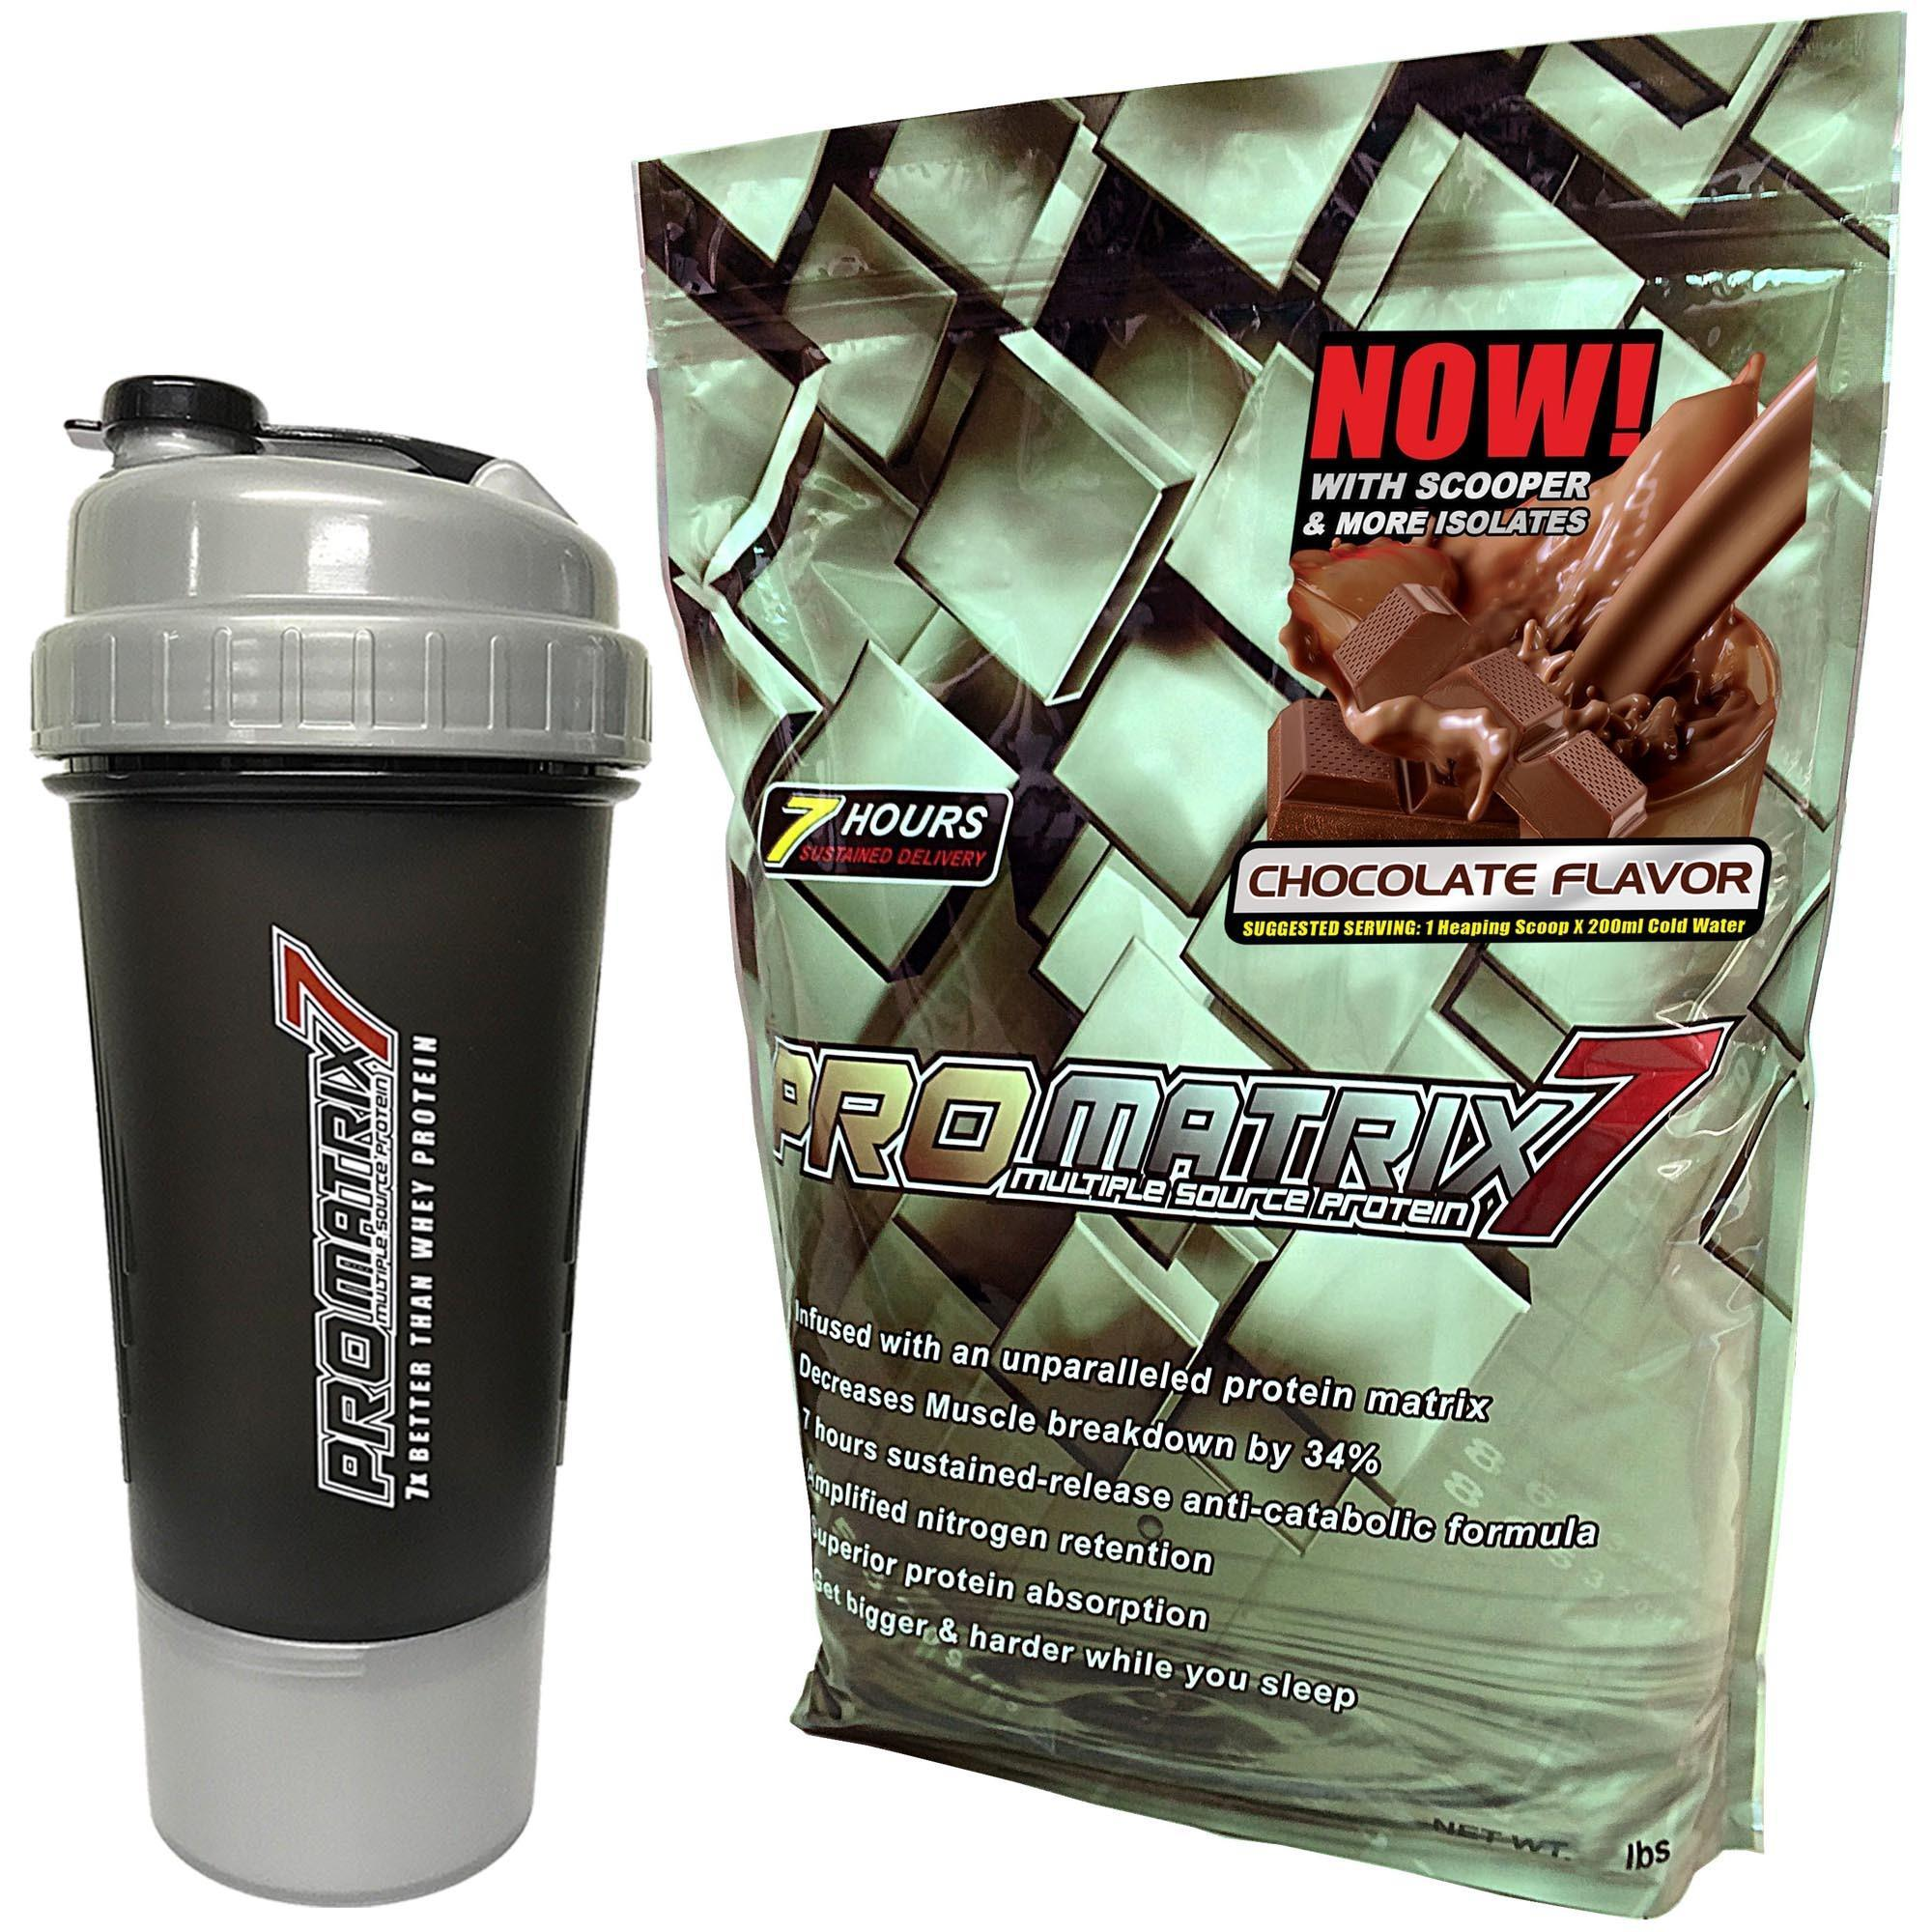 Protein is ... Protein for a set of muscle mass: reviews 80